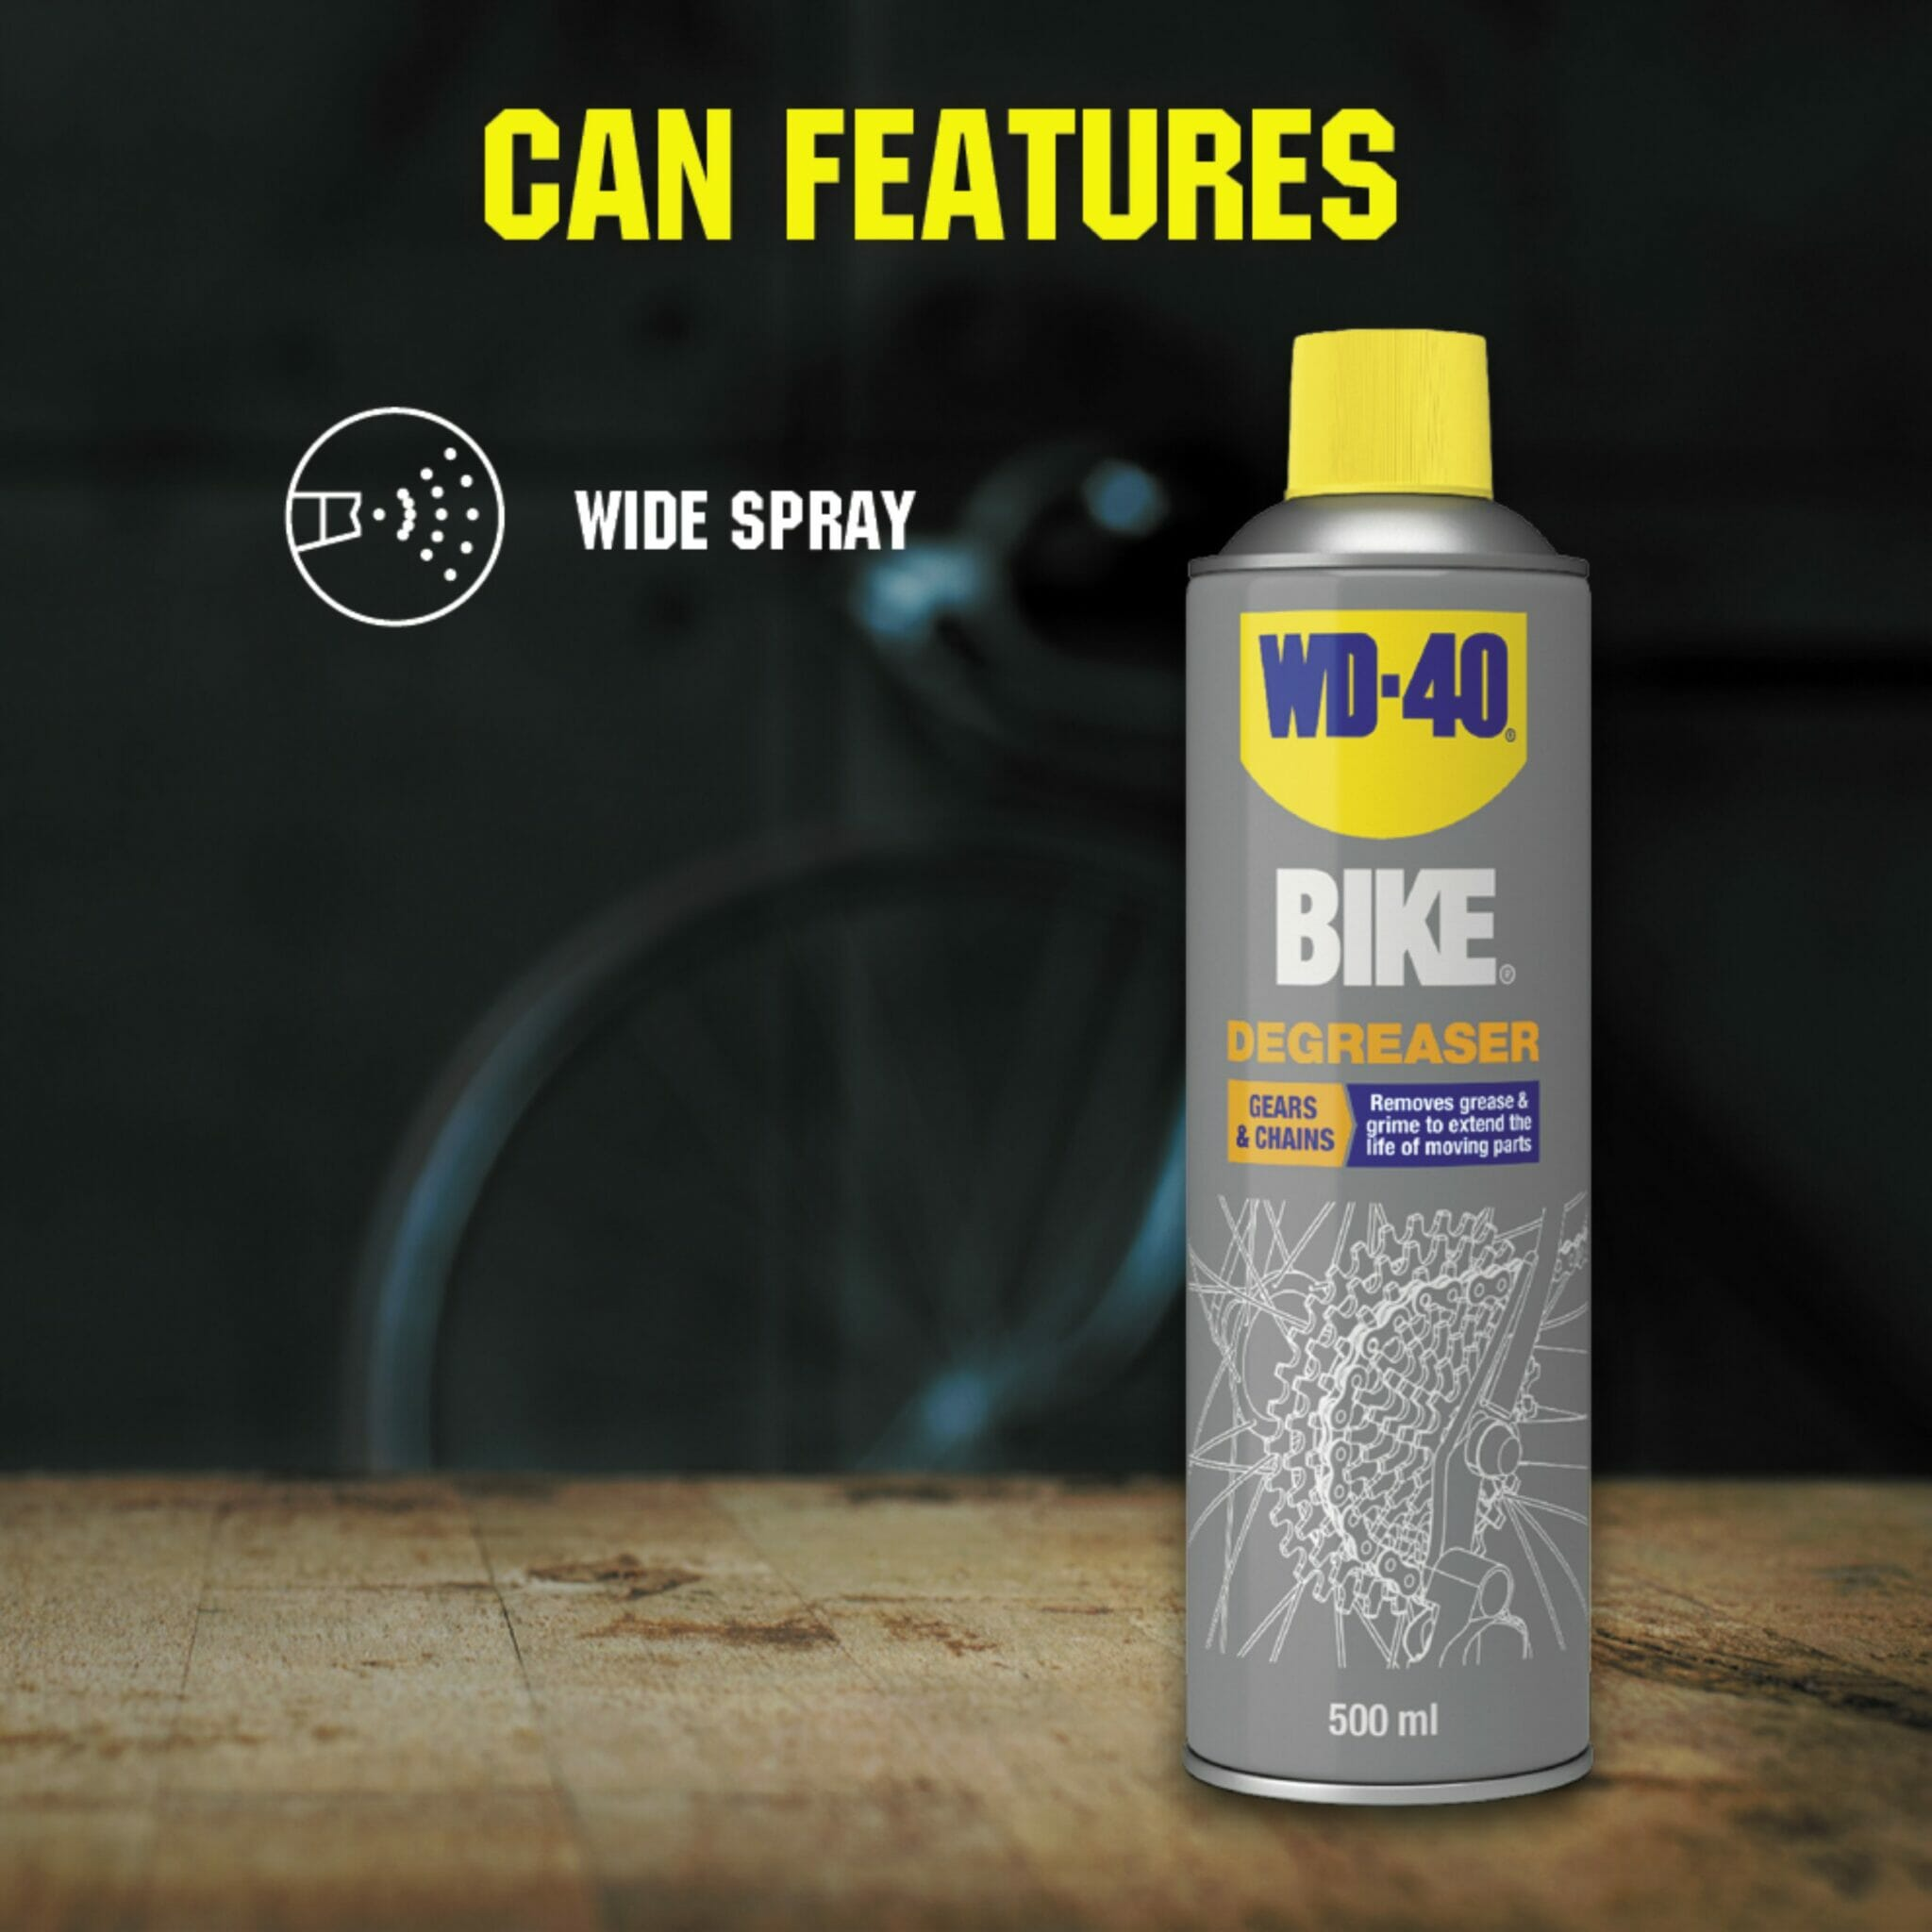 uk wd40 bike degreaser 500ml can features lifestyle background